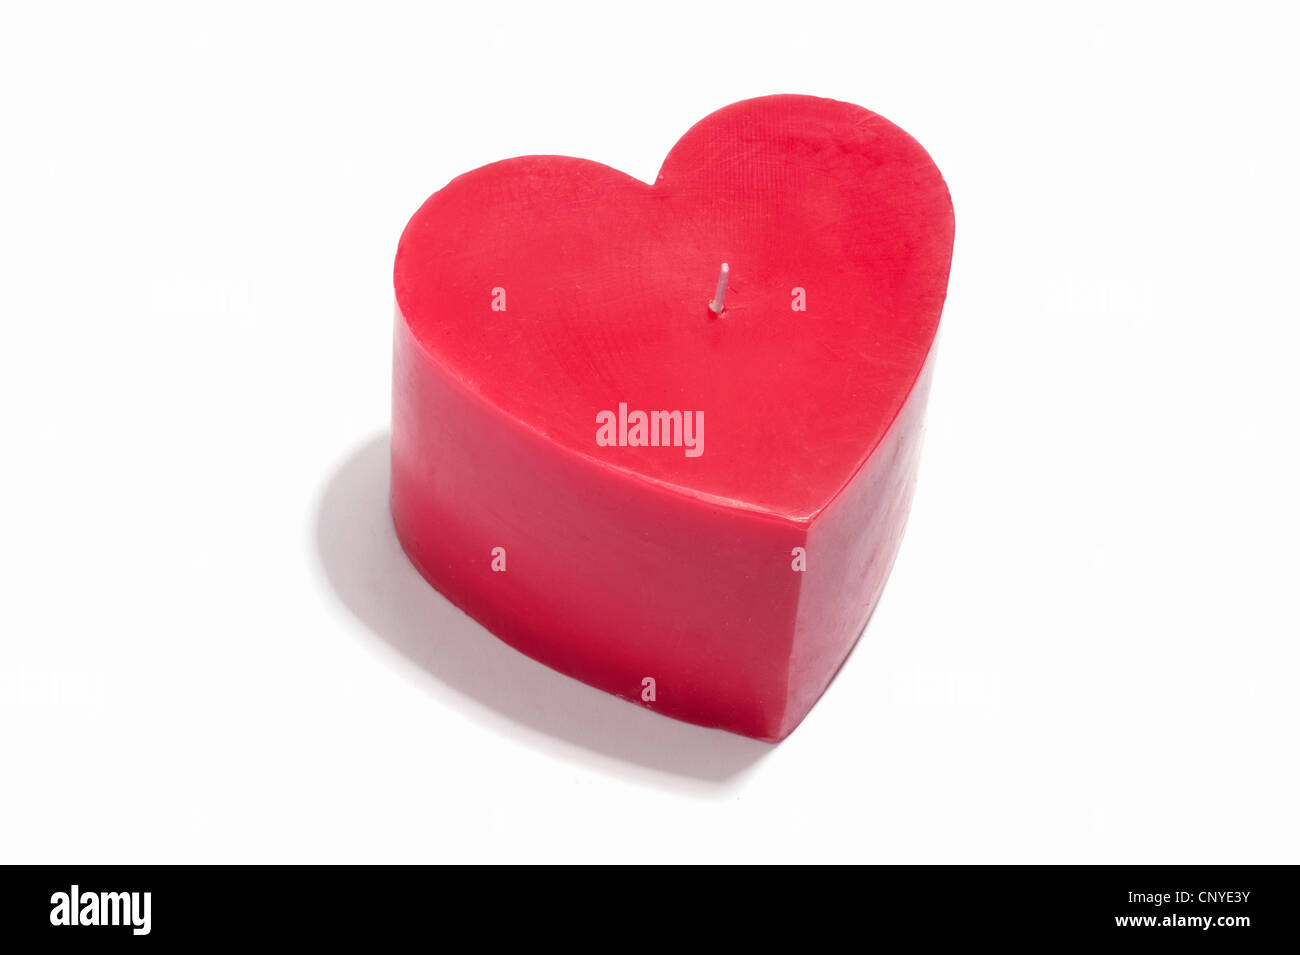 A red heart shaped candle - Stock Image